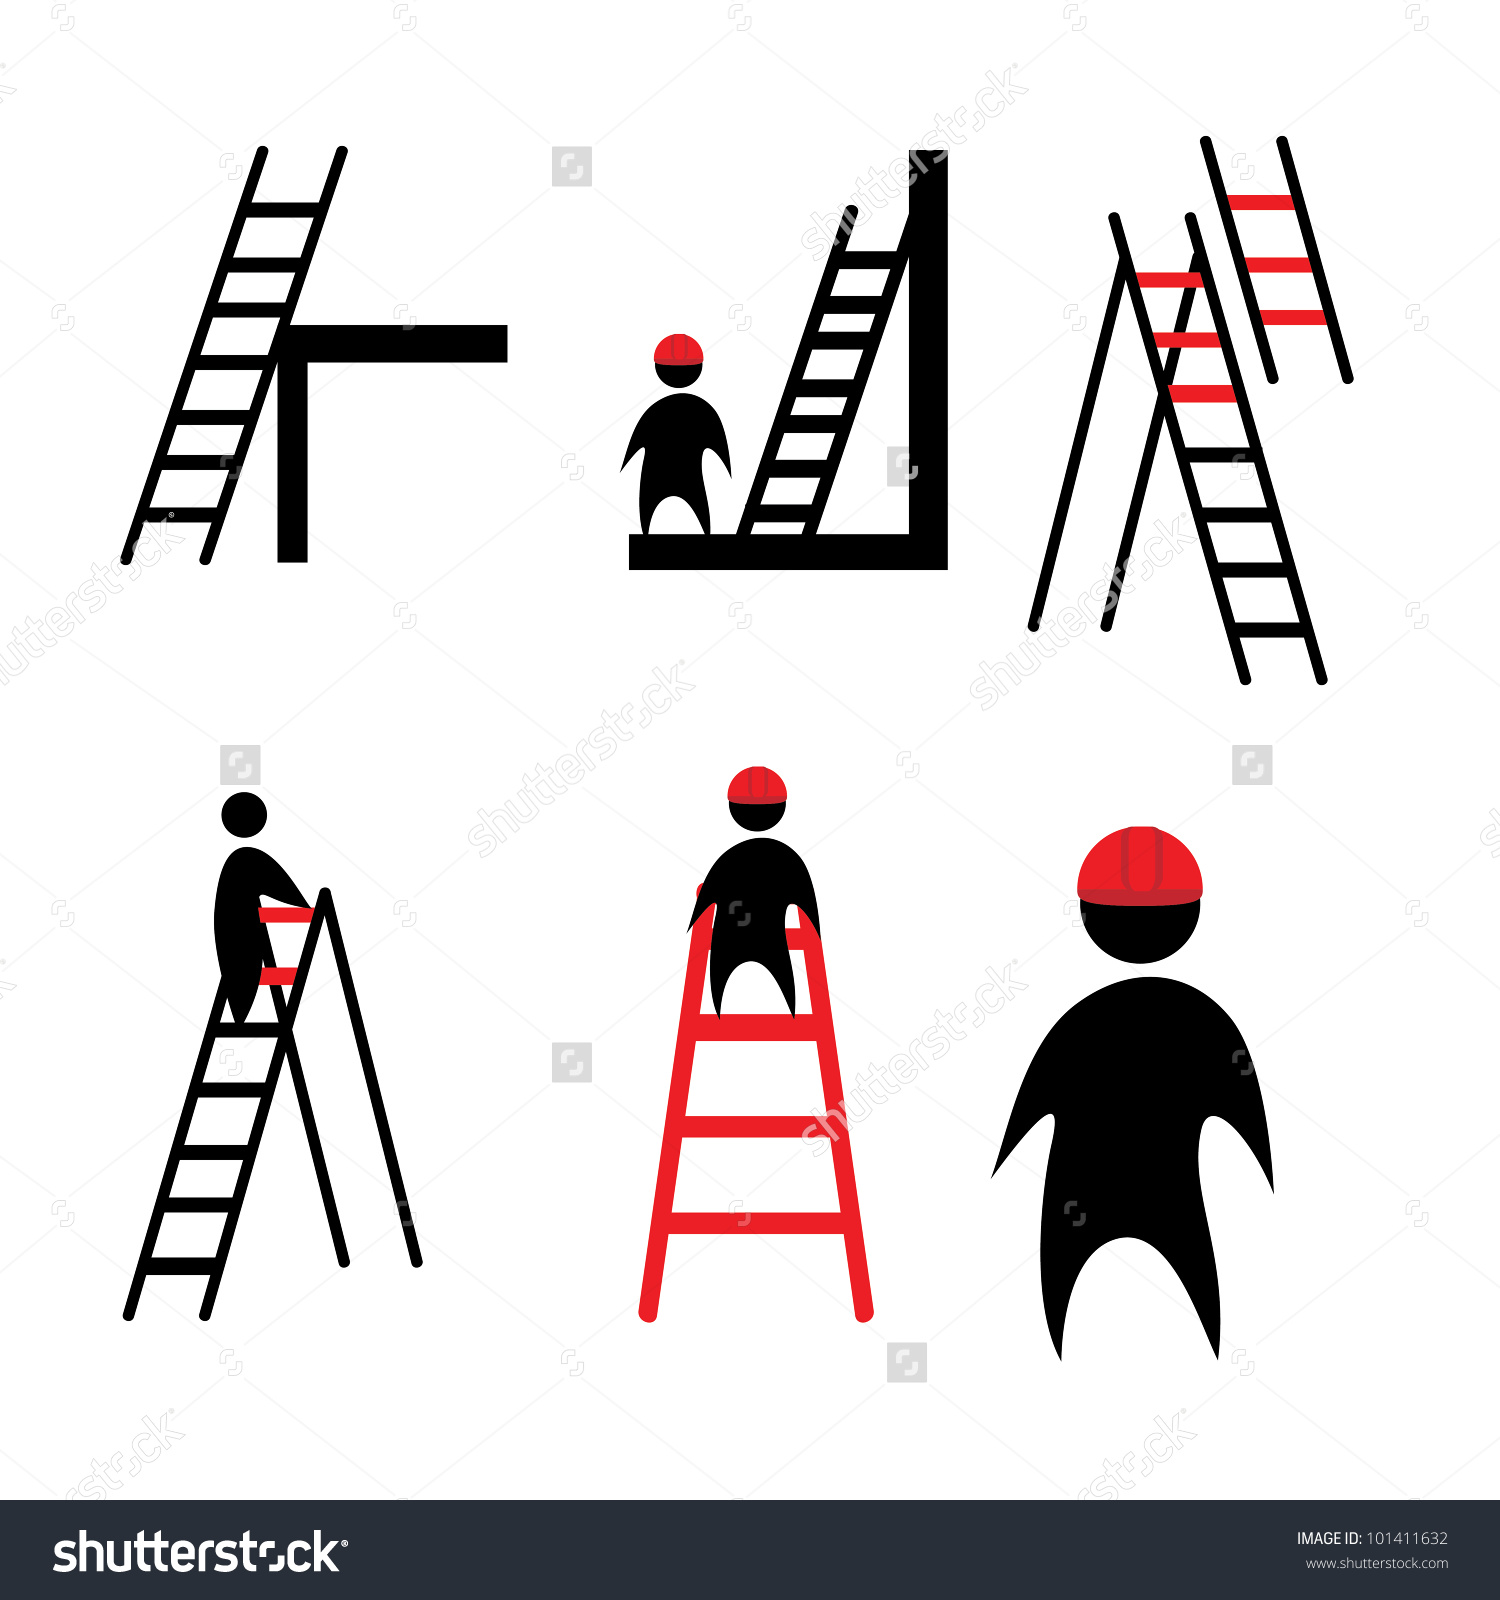 Clipart Ladder Stock Vector Illustration 101411632 : Shutterstock.